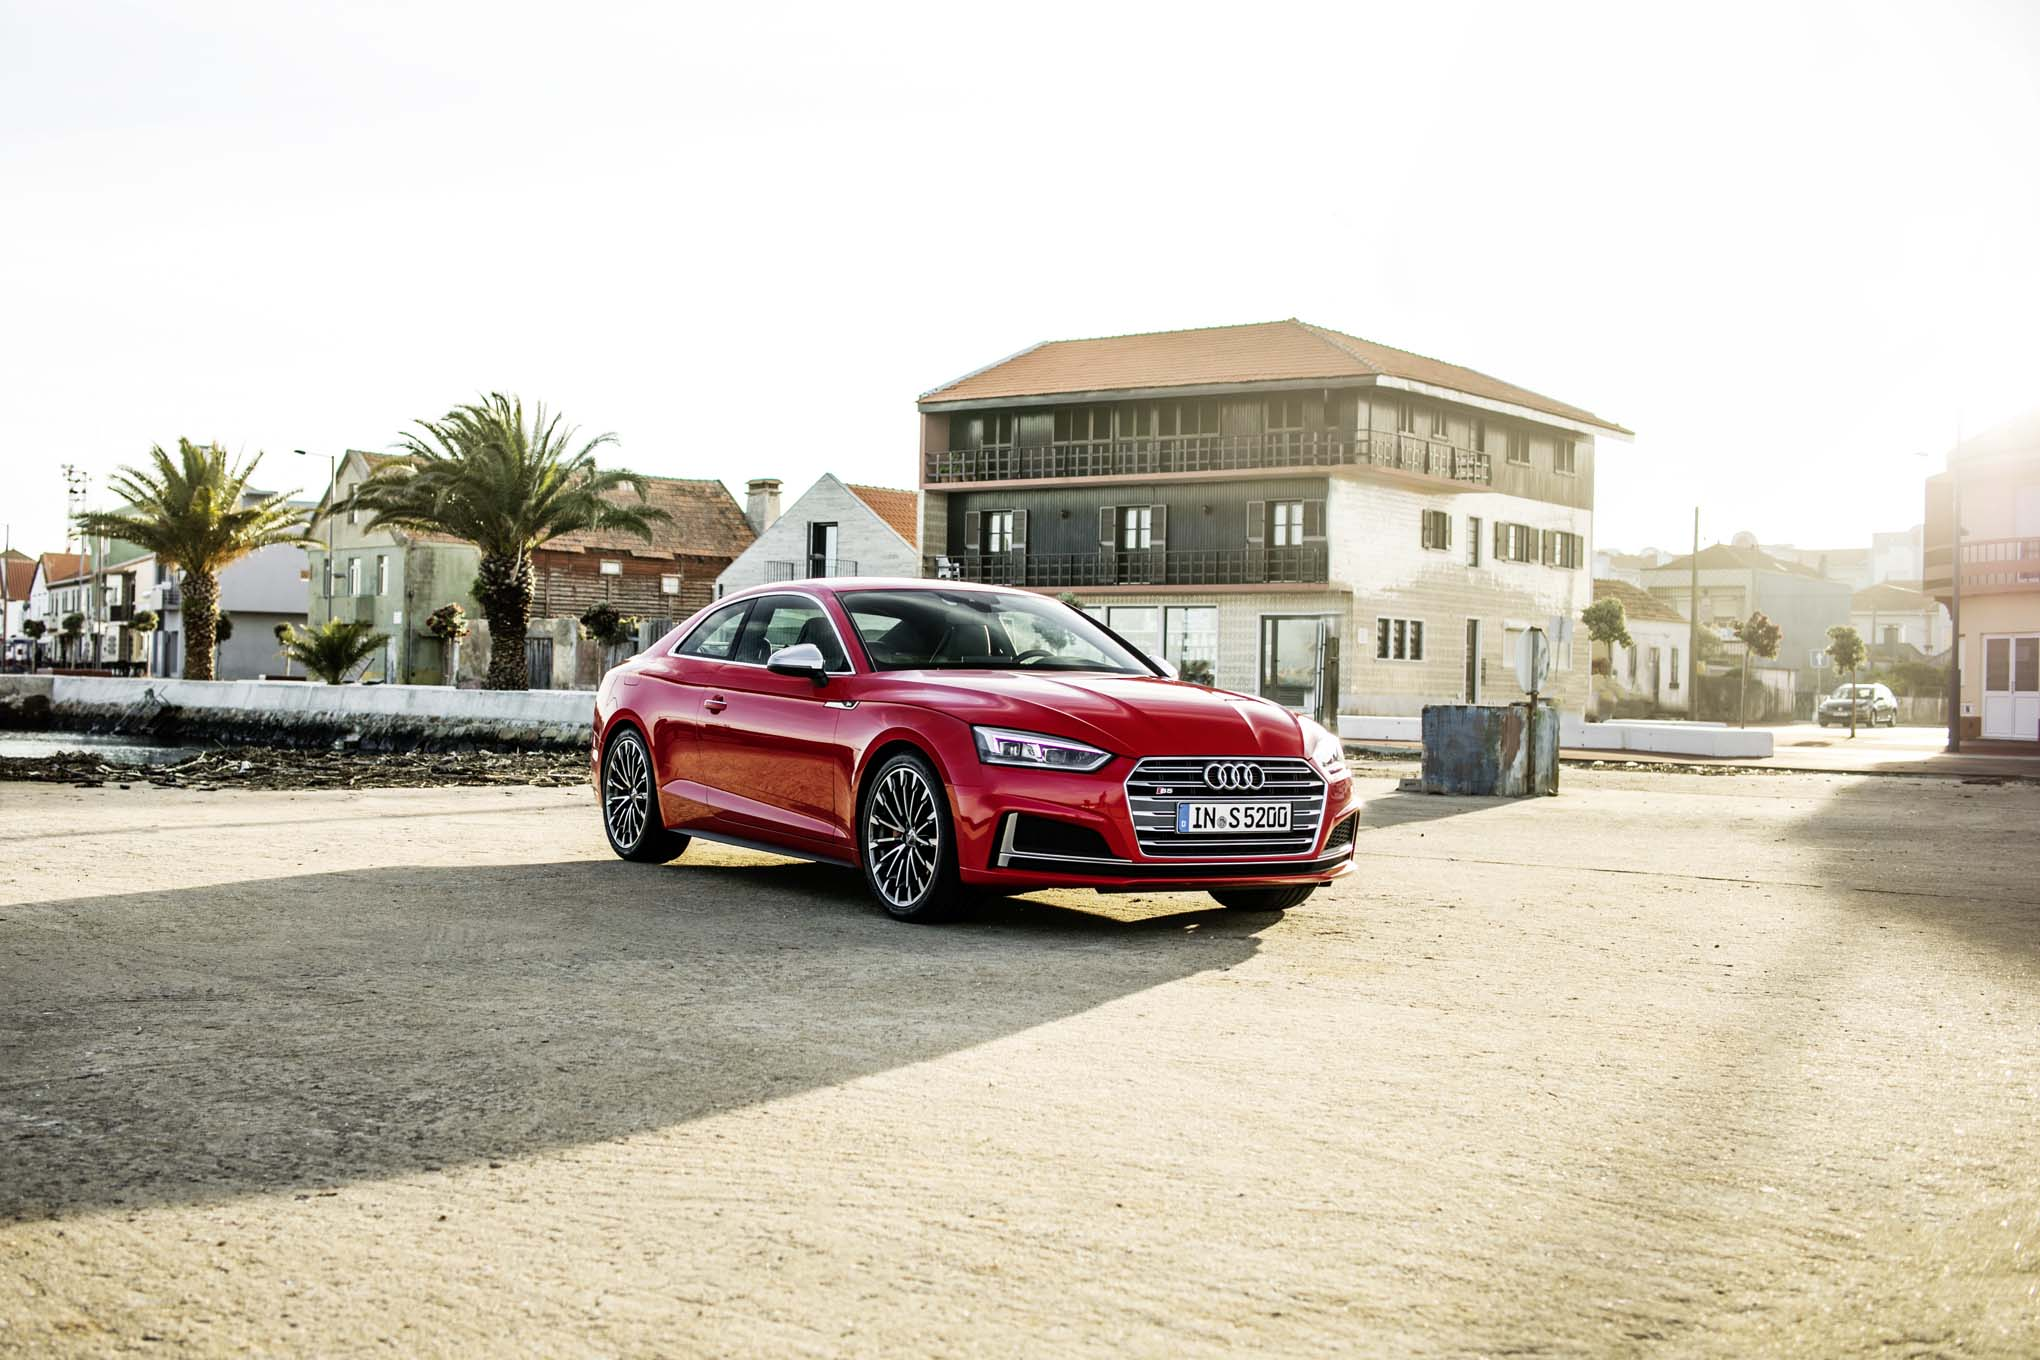 Audi s5 sportback 2017 review by car magazine - Show More